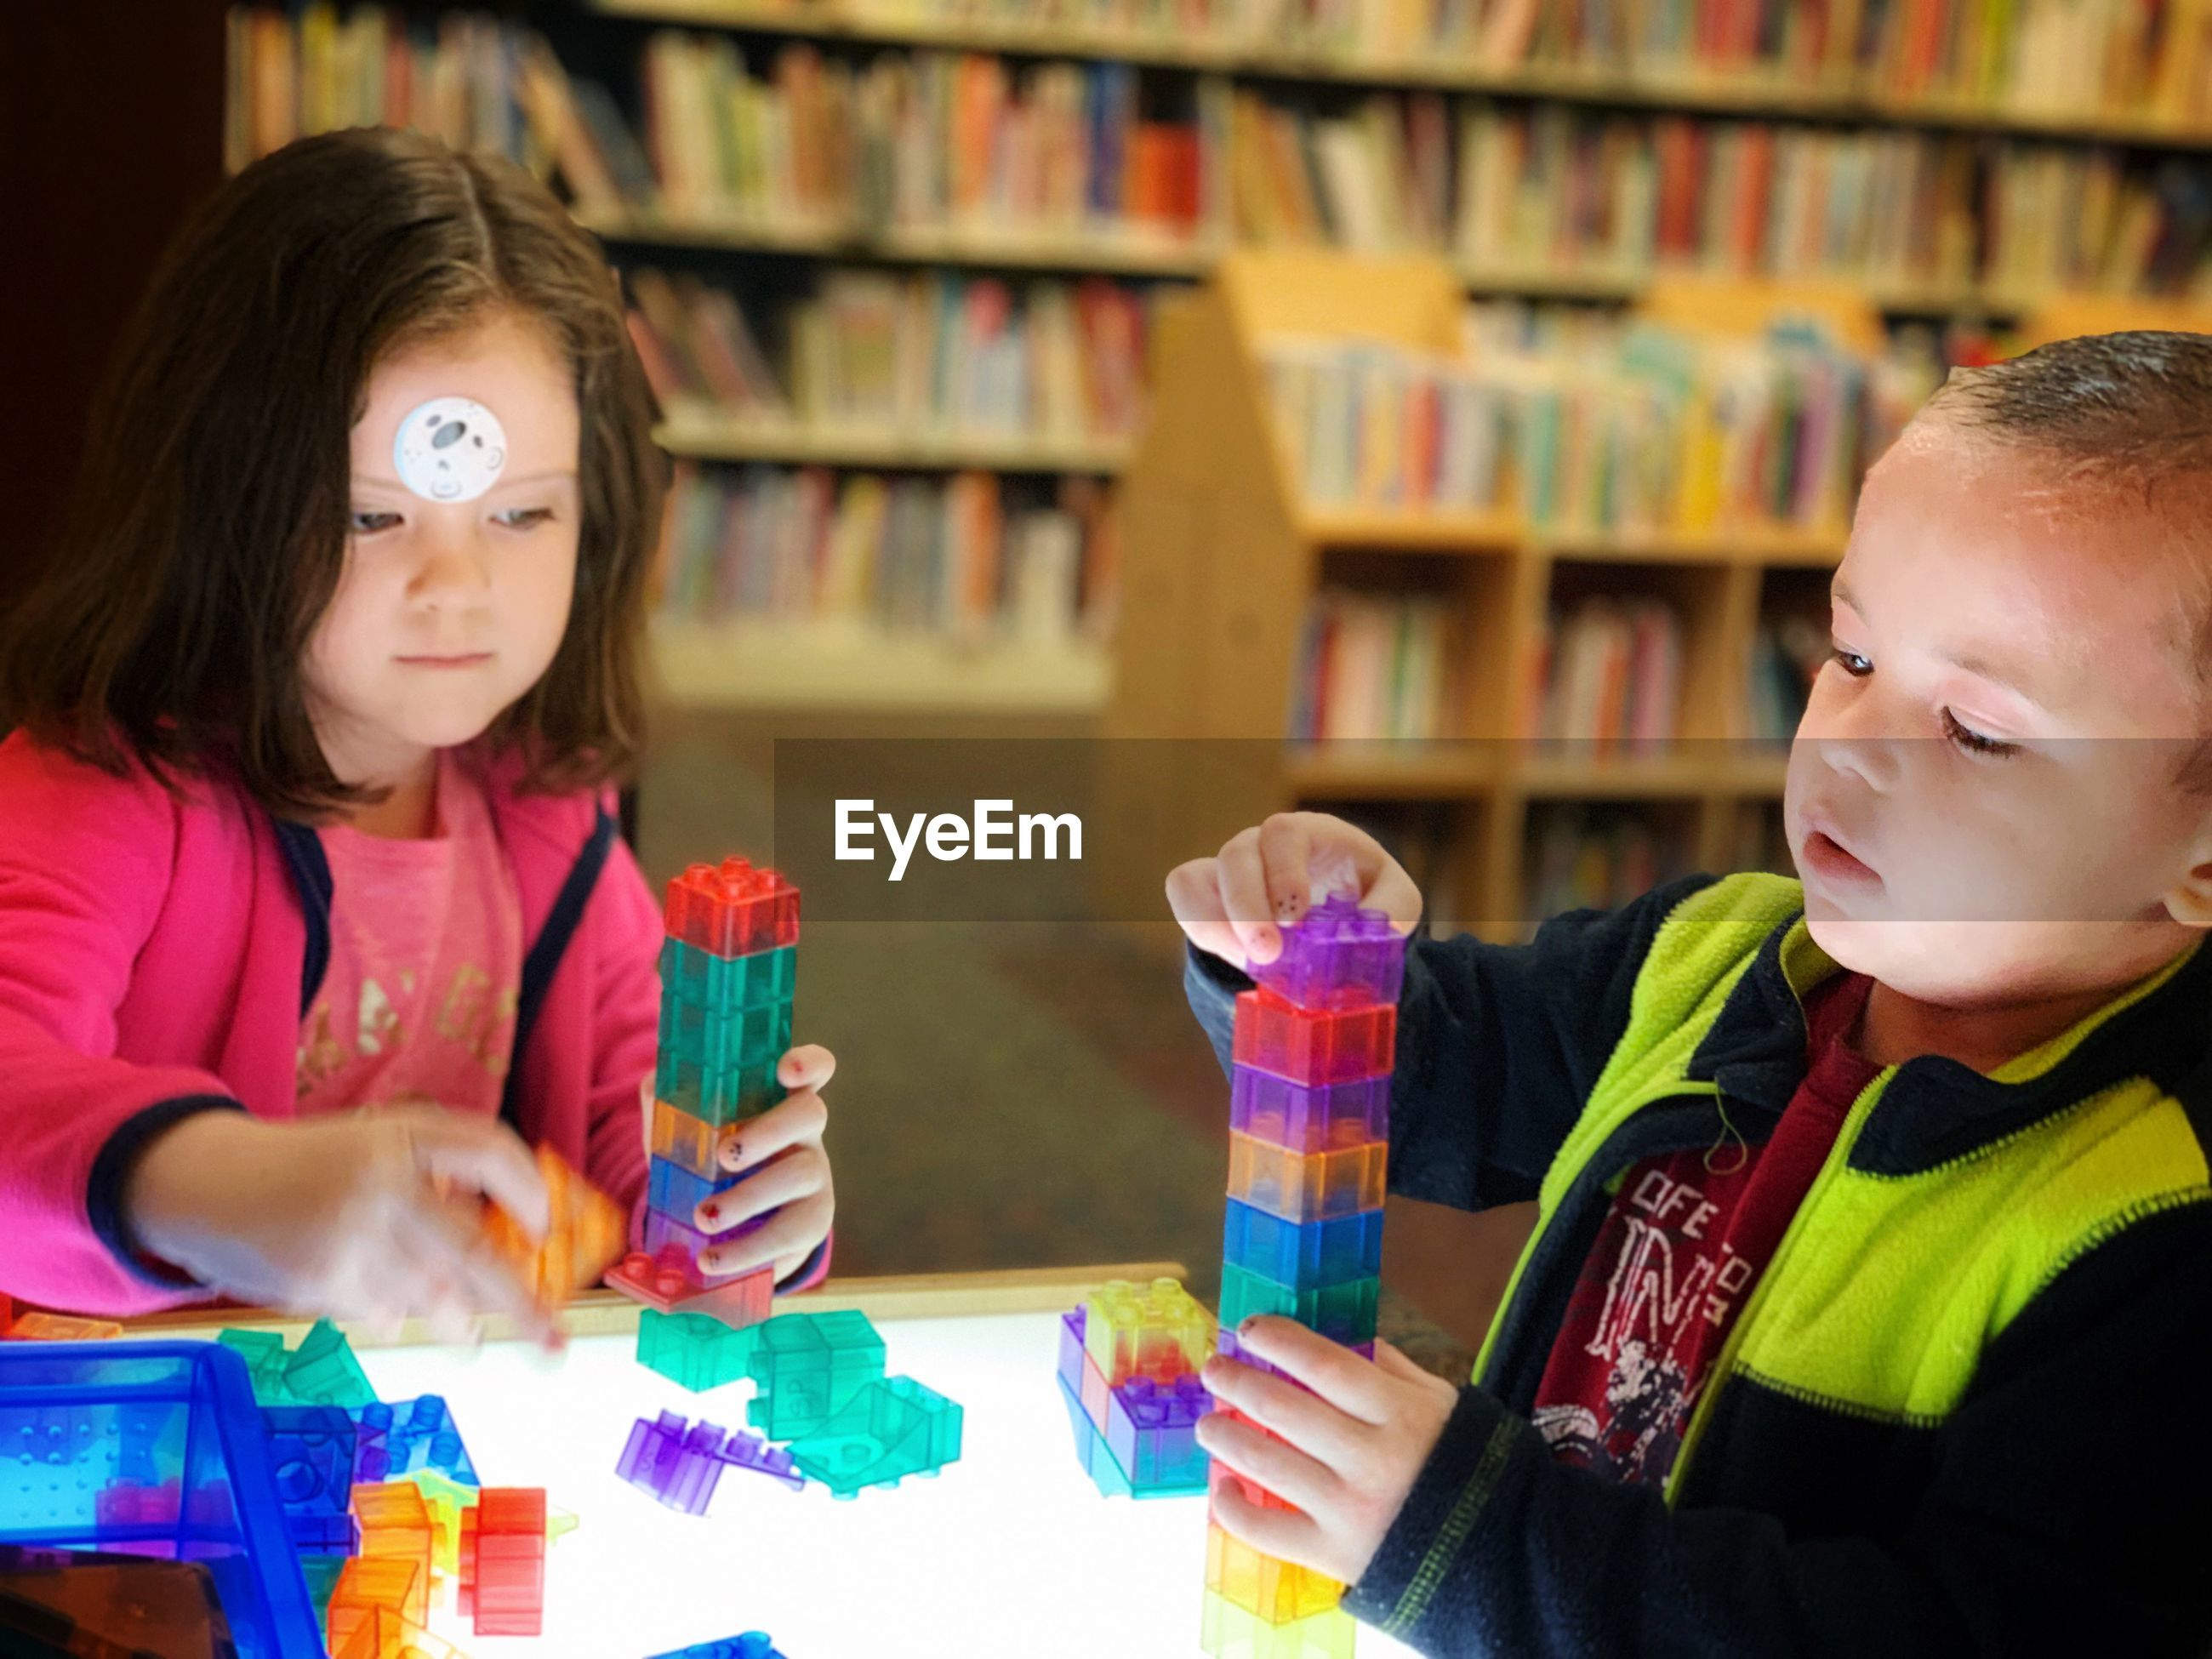 Siblings playing with toy blocks on table in library